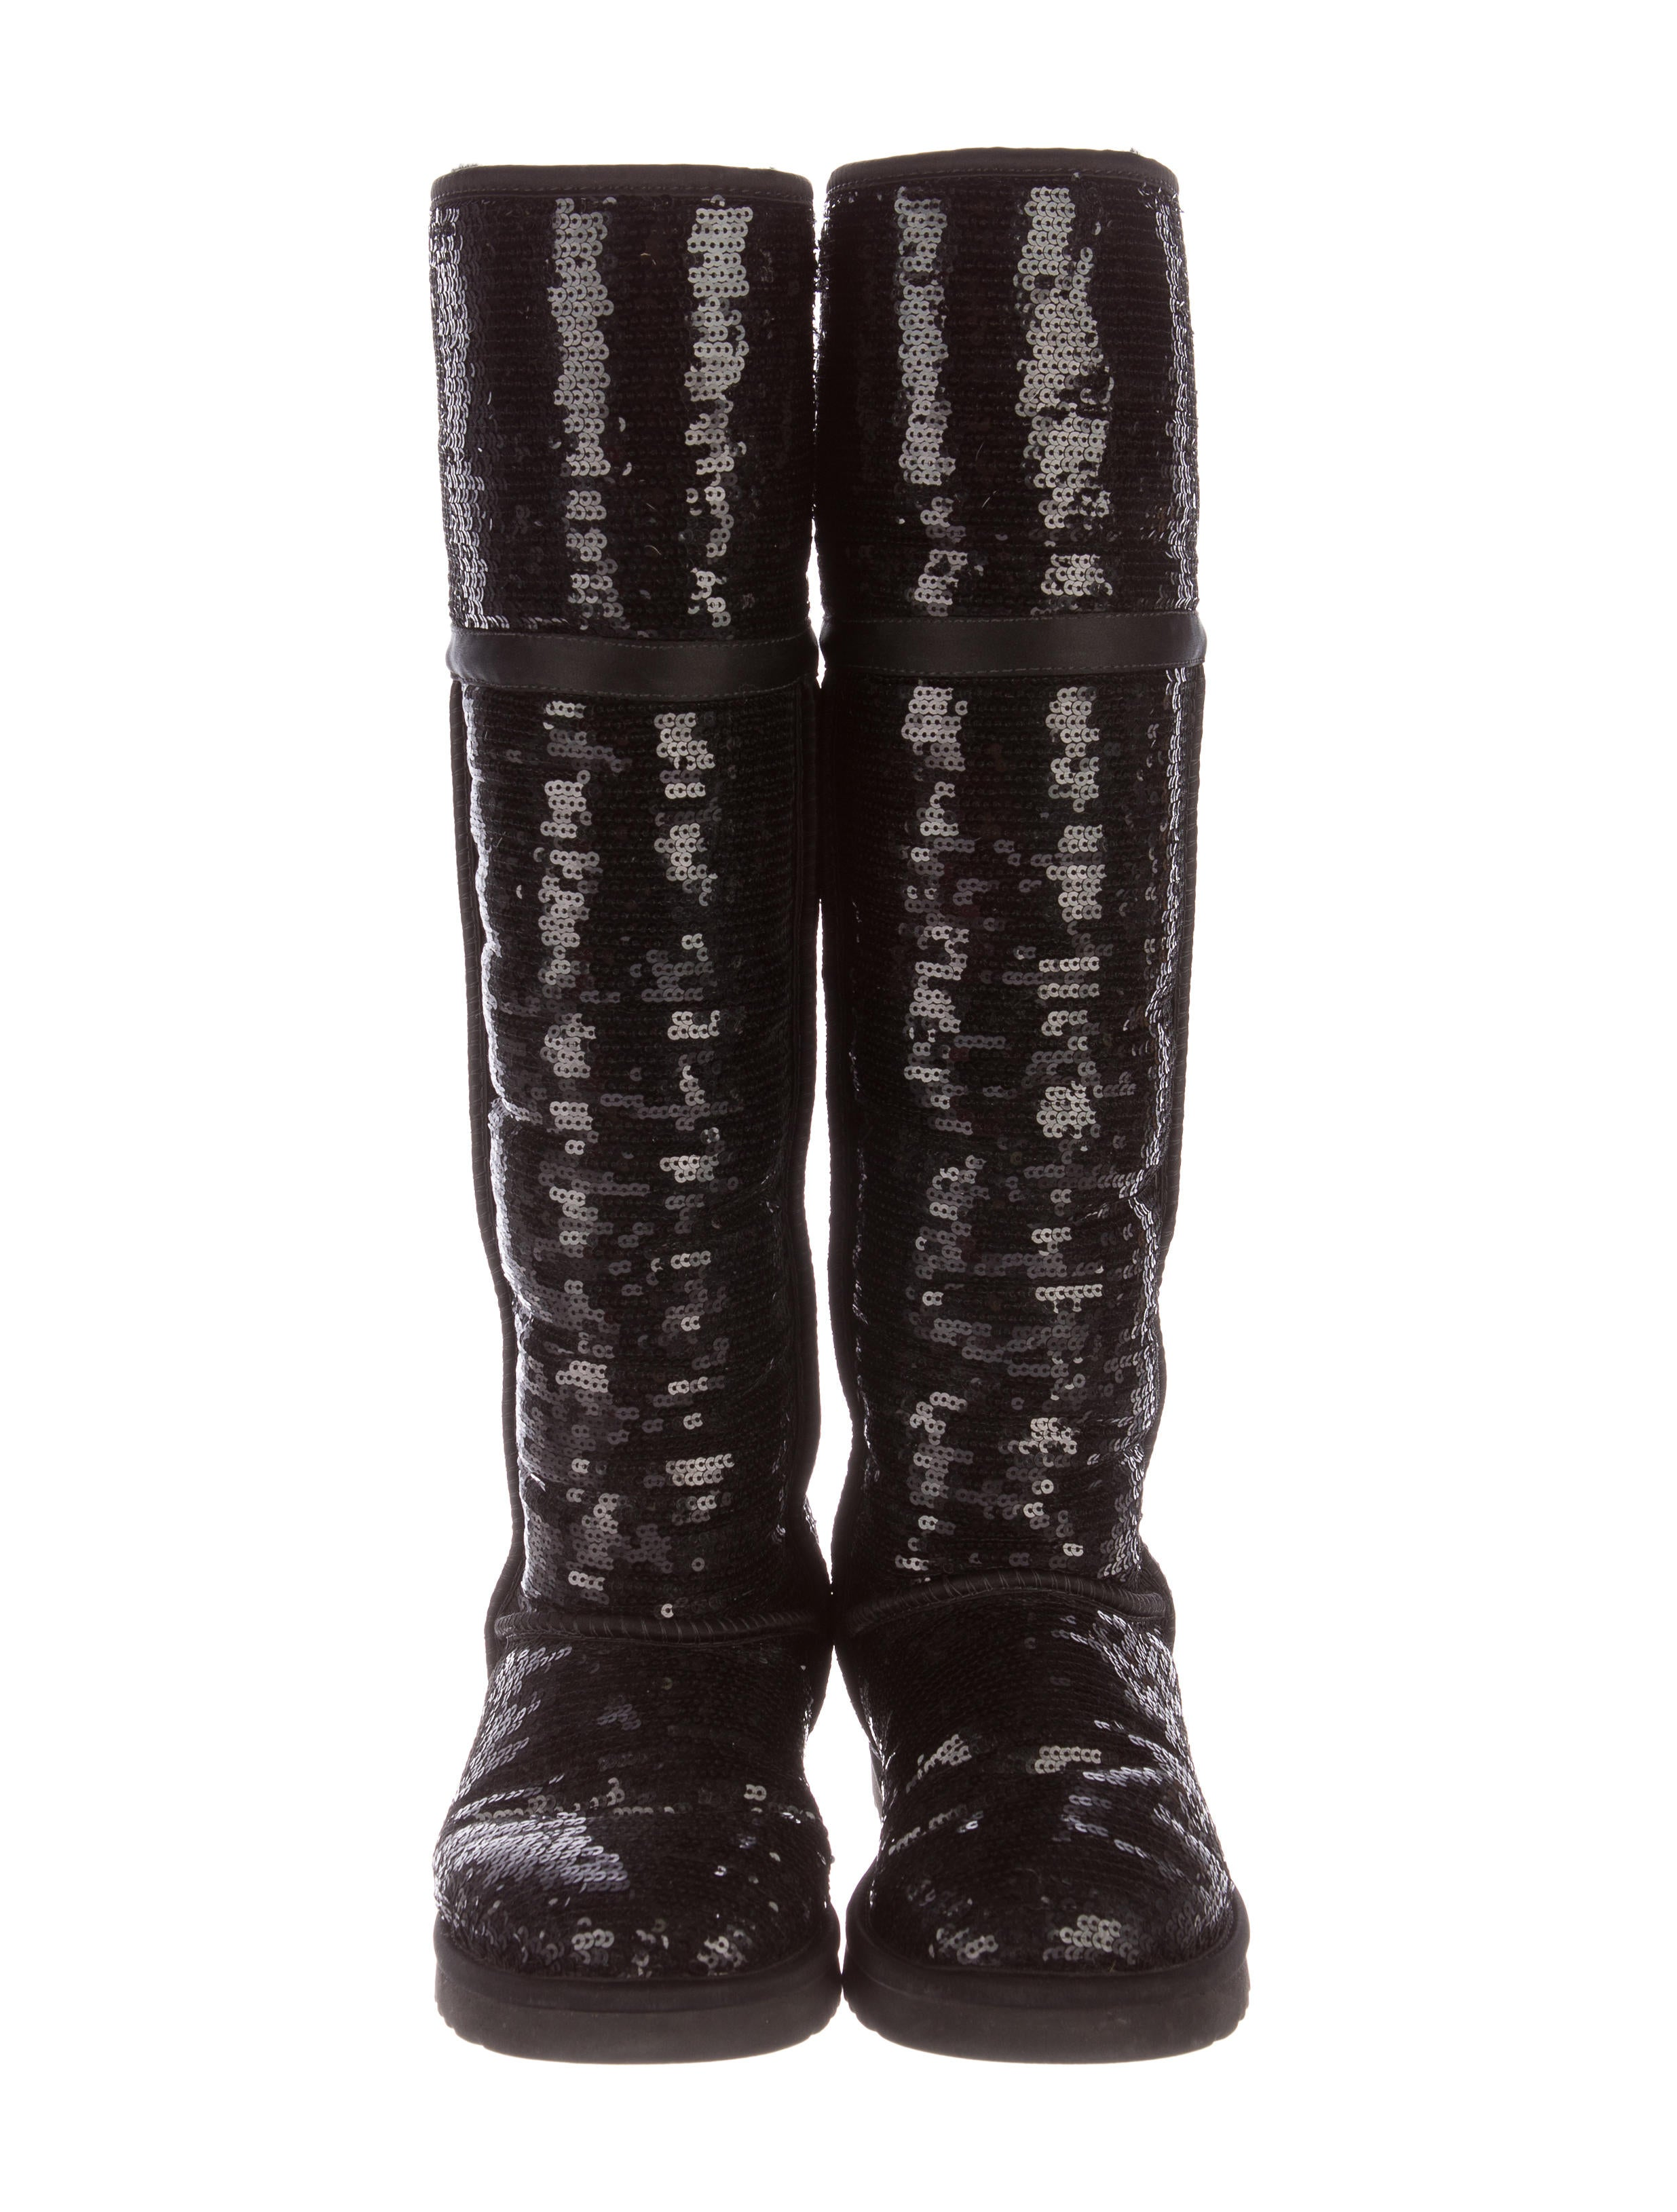 7e1609fb809 Ugg Bailey Over The Knee Sequin